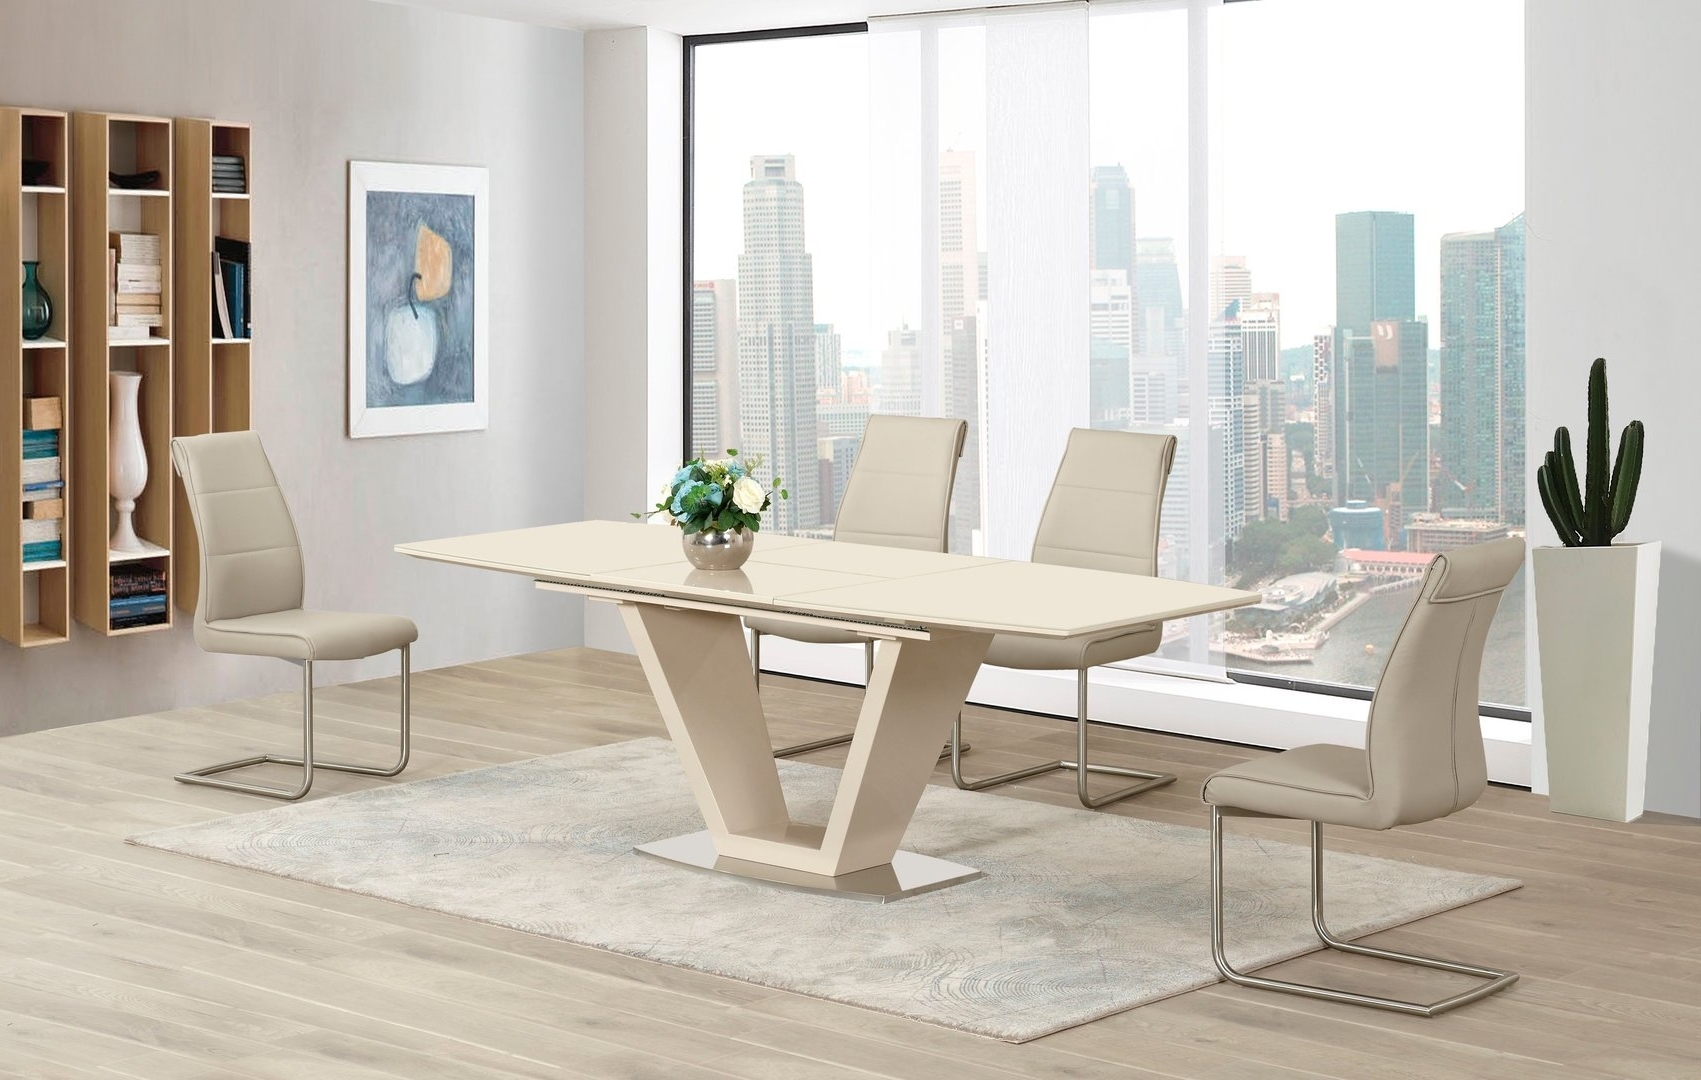 Extendable Glass Dining Tables And 6 Chairs within Widely used Cream Extending Glass High Gloss Dining Table And 6 Taupe Chairs